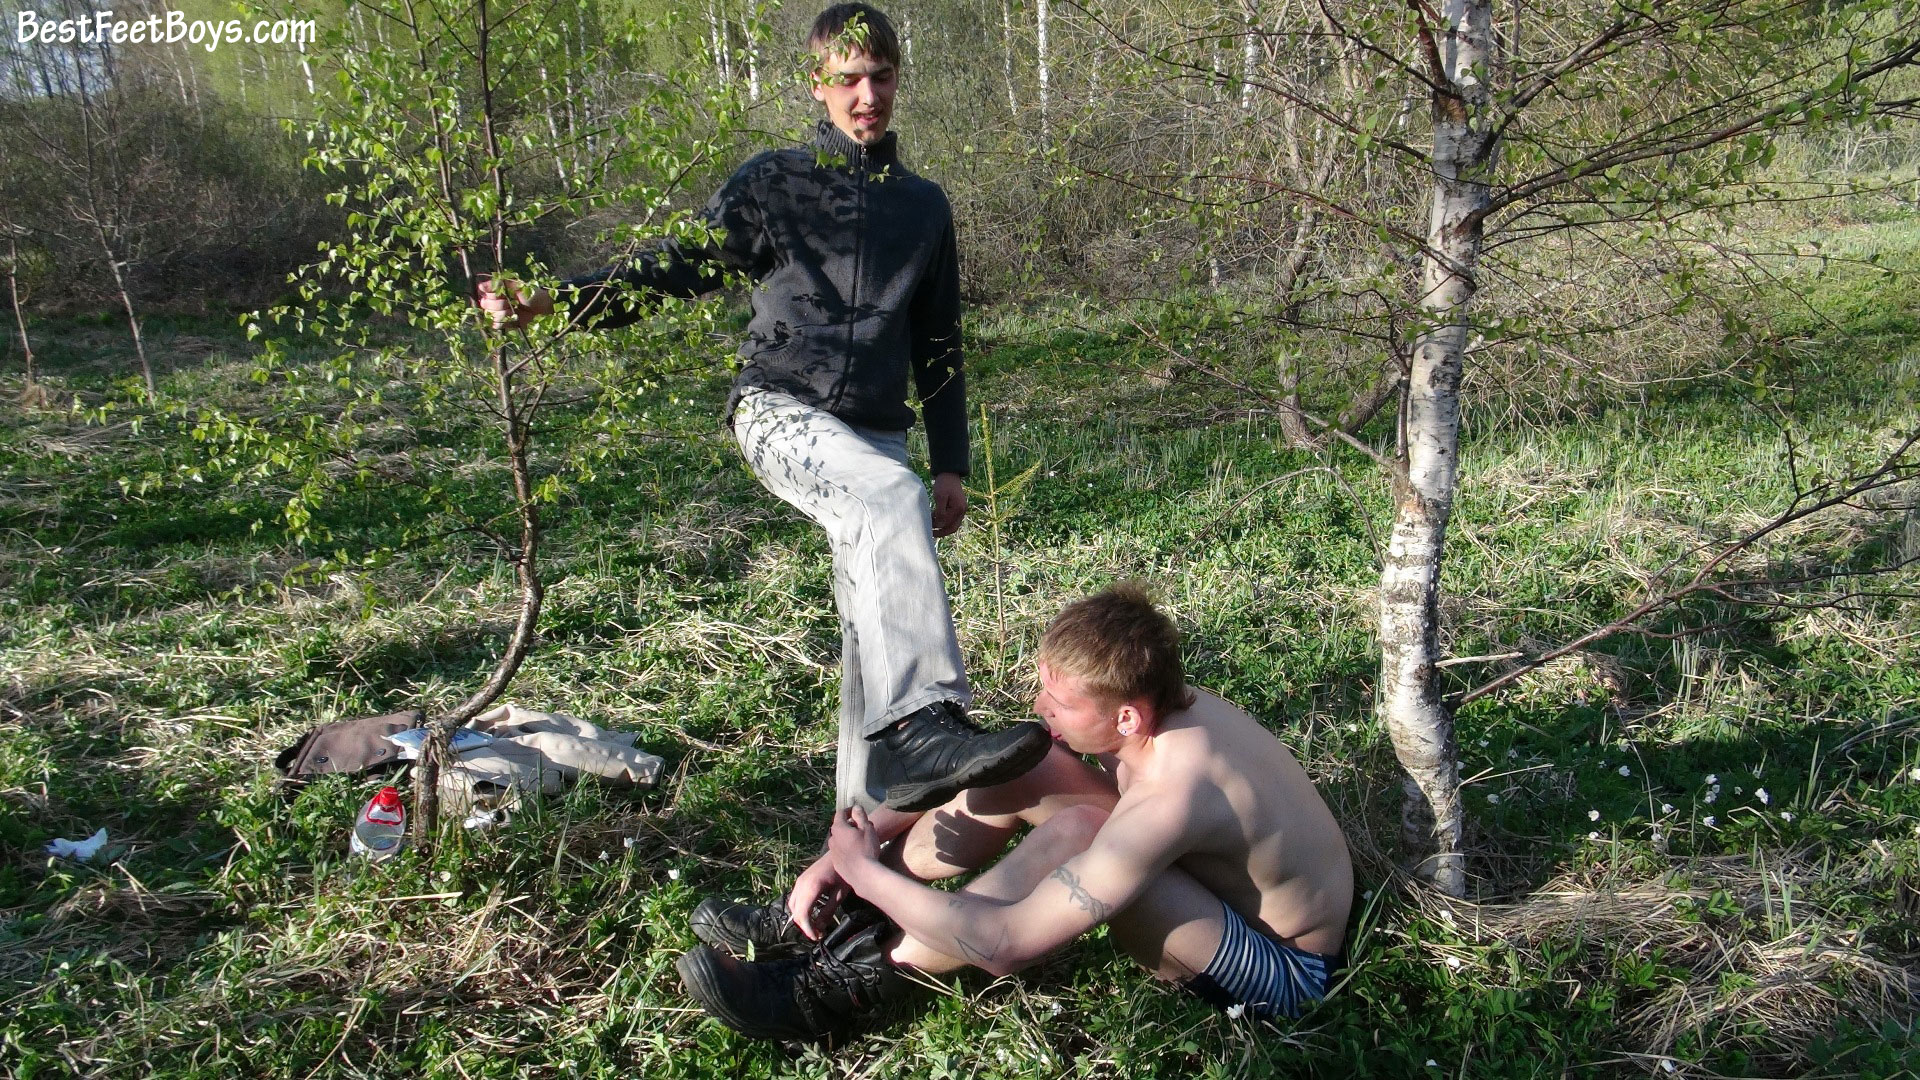 Boots gay licking feet images